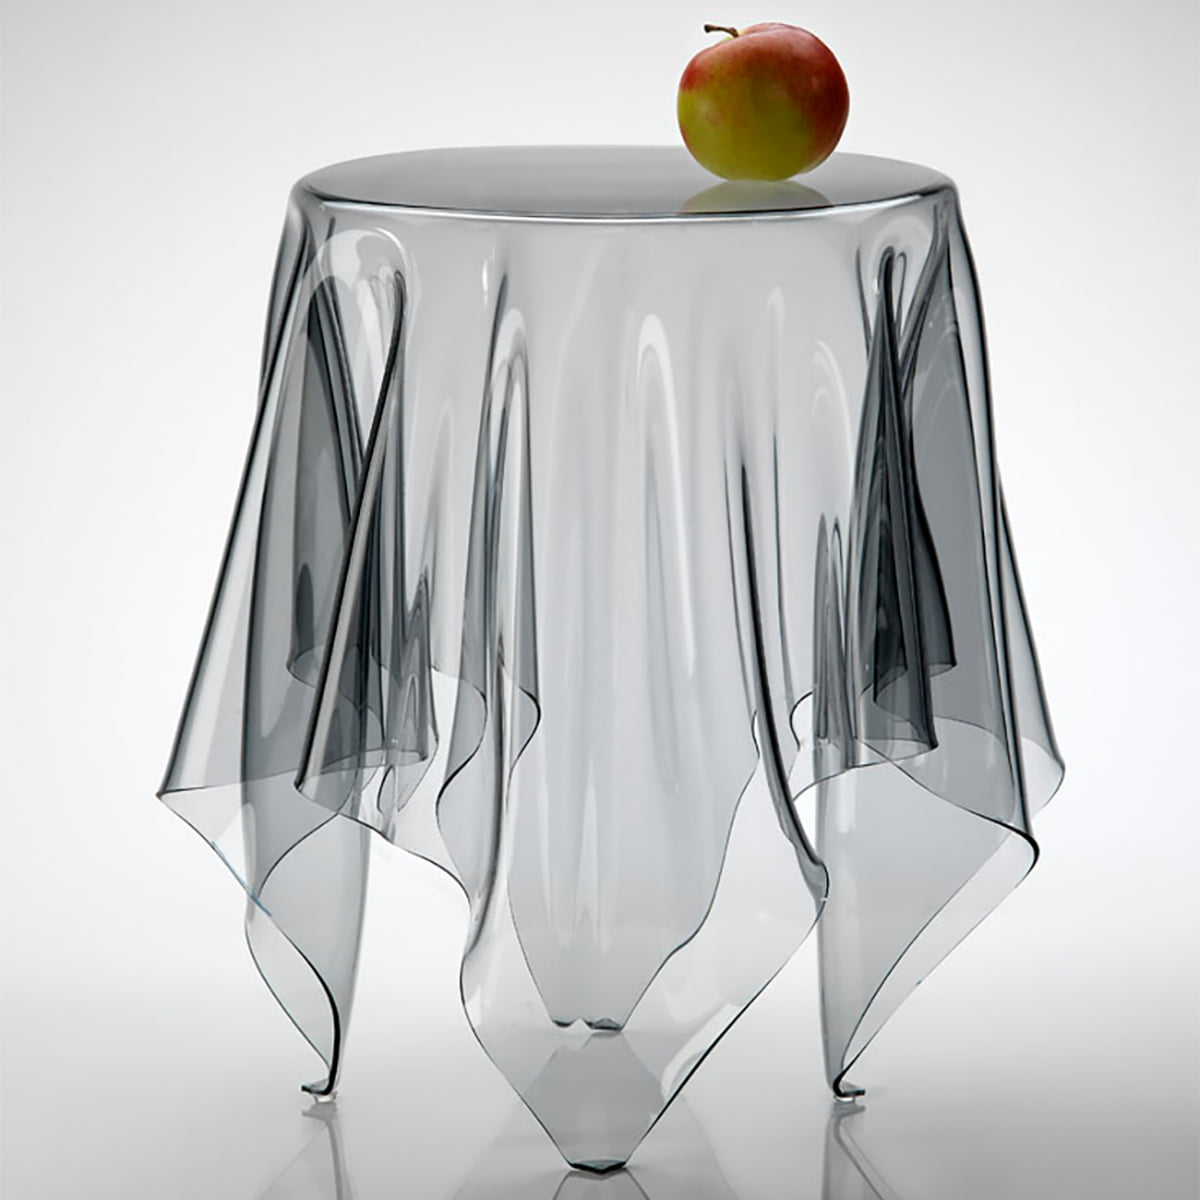 illusion  grand illusion table by essey - illusion side table transparent